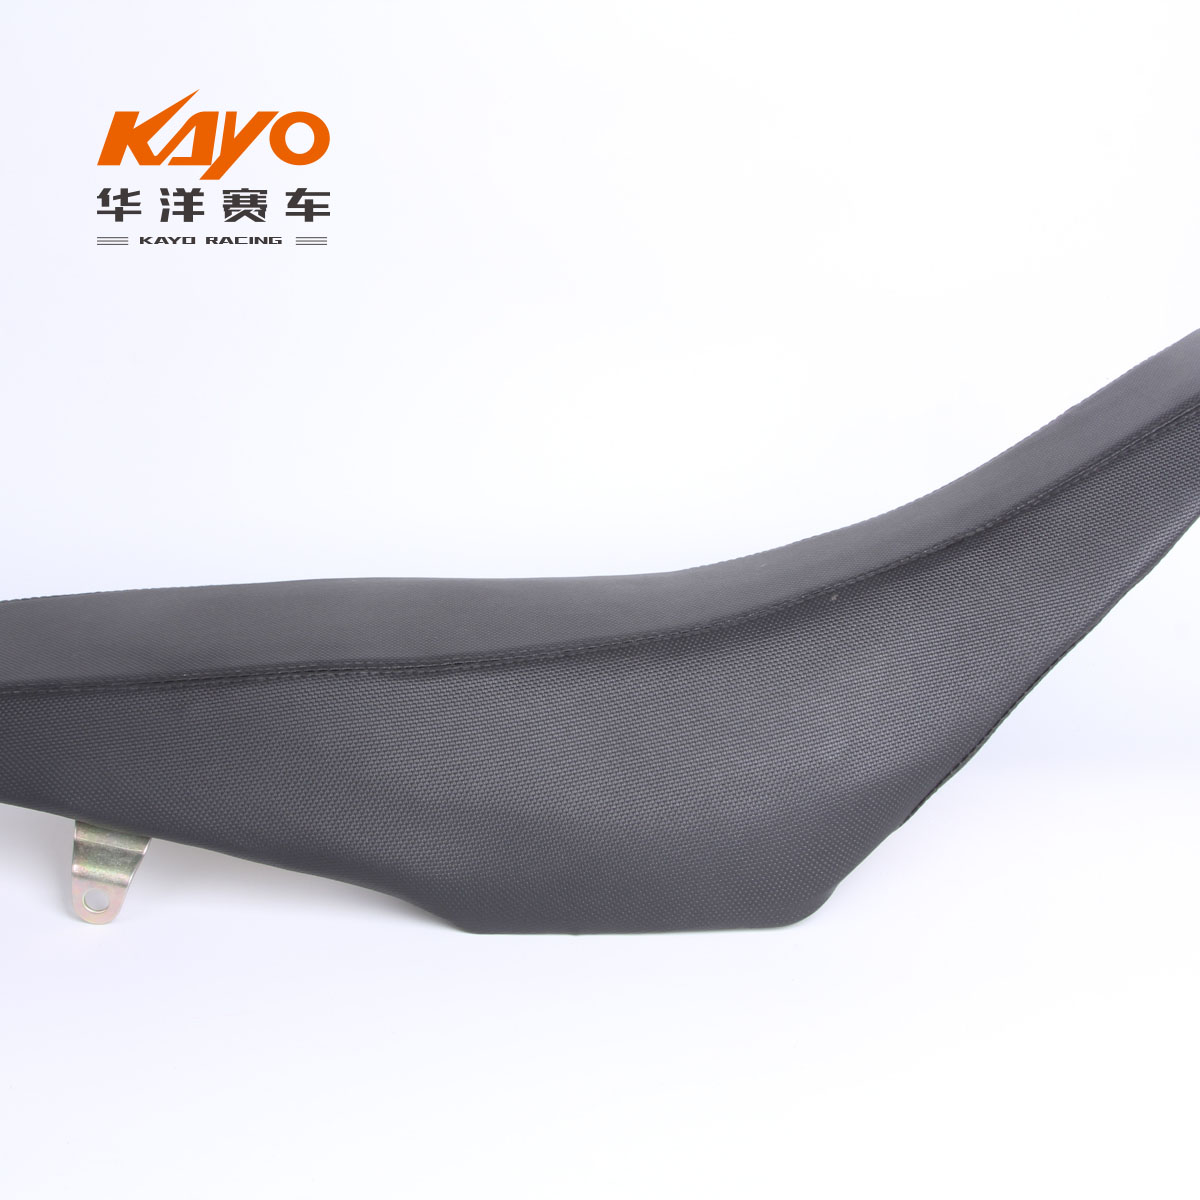 цена на Huayang kayo t2 t4 off-road motorcycle sports car cushion seat accessories free shipping